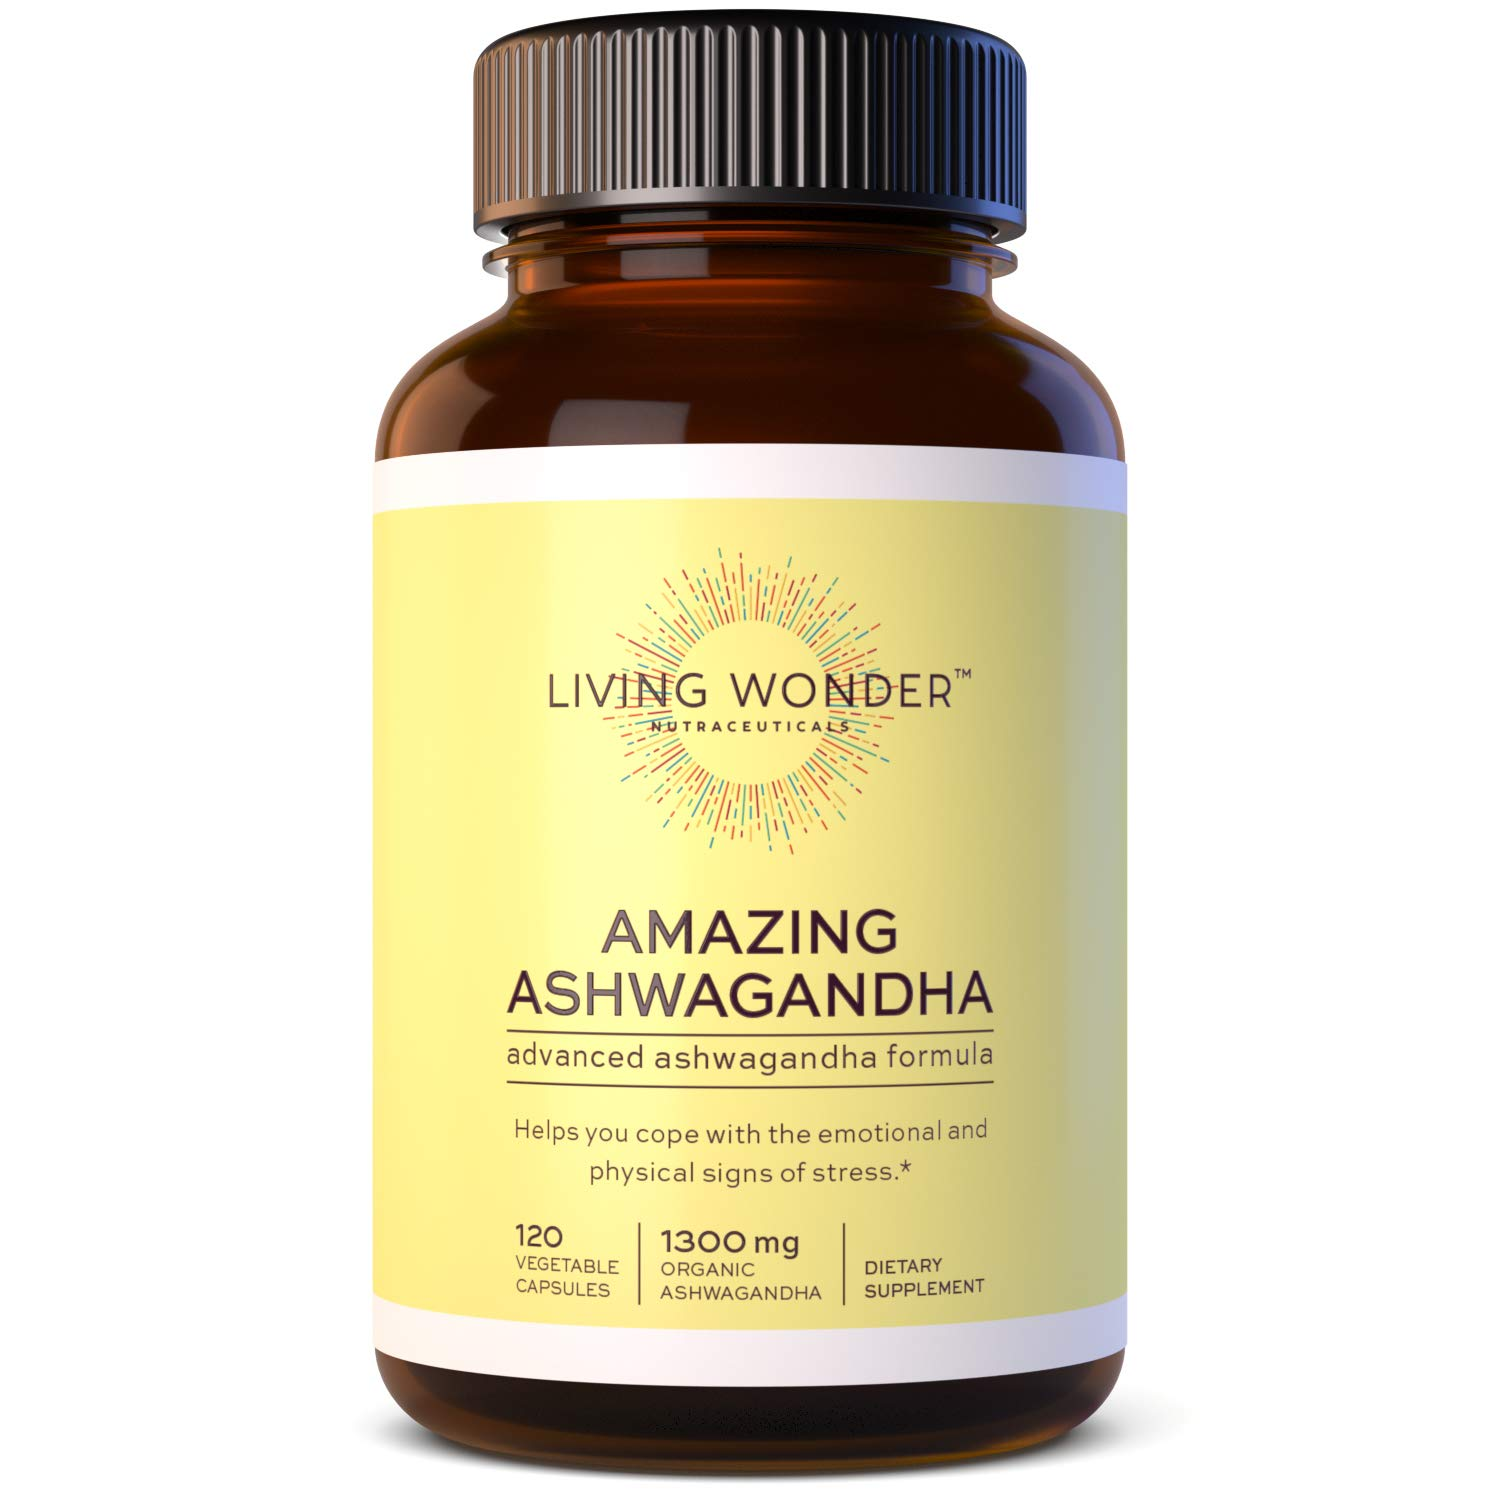 Living Wonder Ashwagandha Capsules - 1300mg -Organic Ashwaganda, with Black Pepper, Calming Blend - Adaptogen Herb for Anti Anxiety, Stress Relief, Adrenal Supplement - 120 Capsules